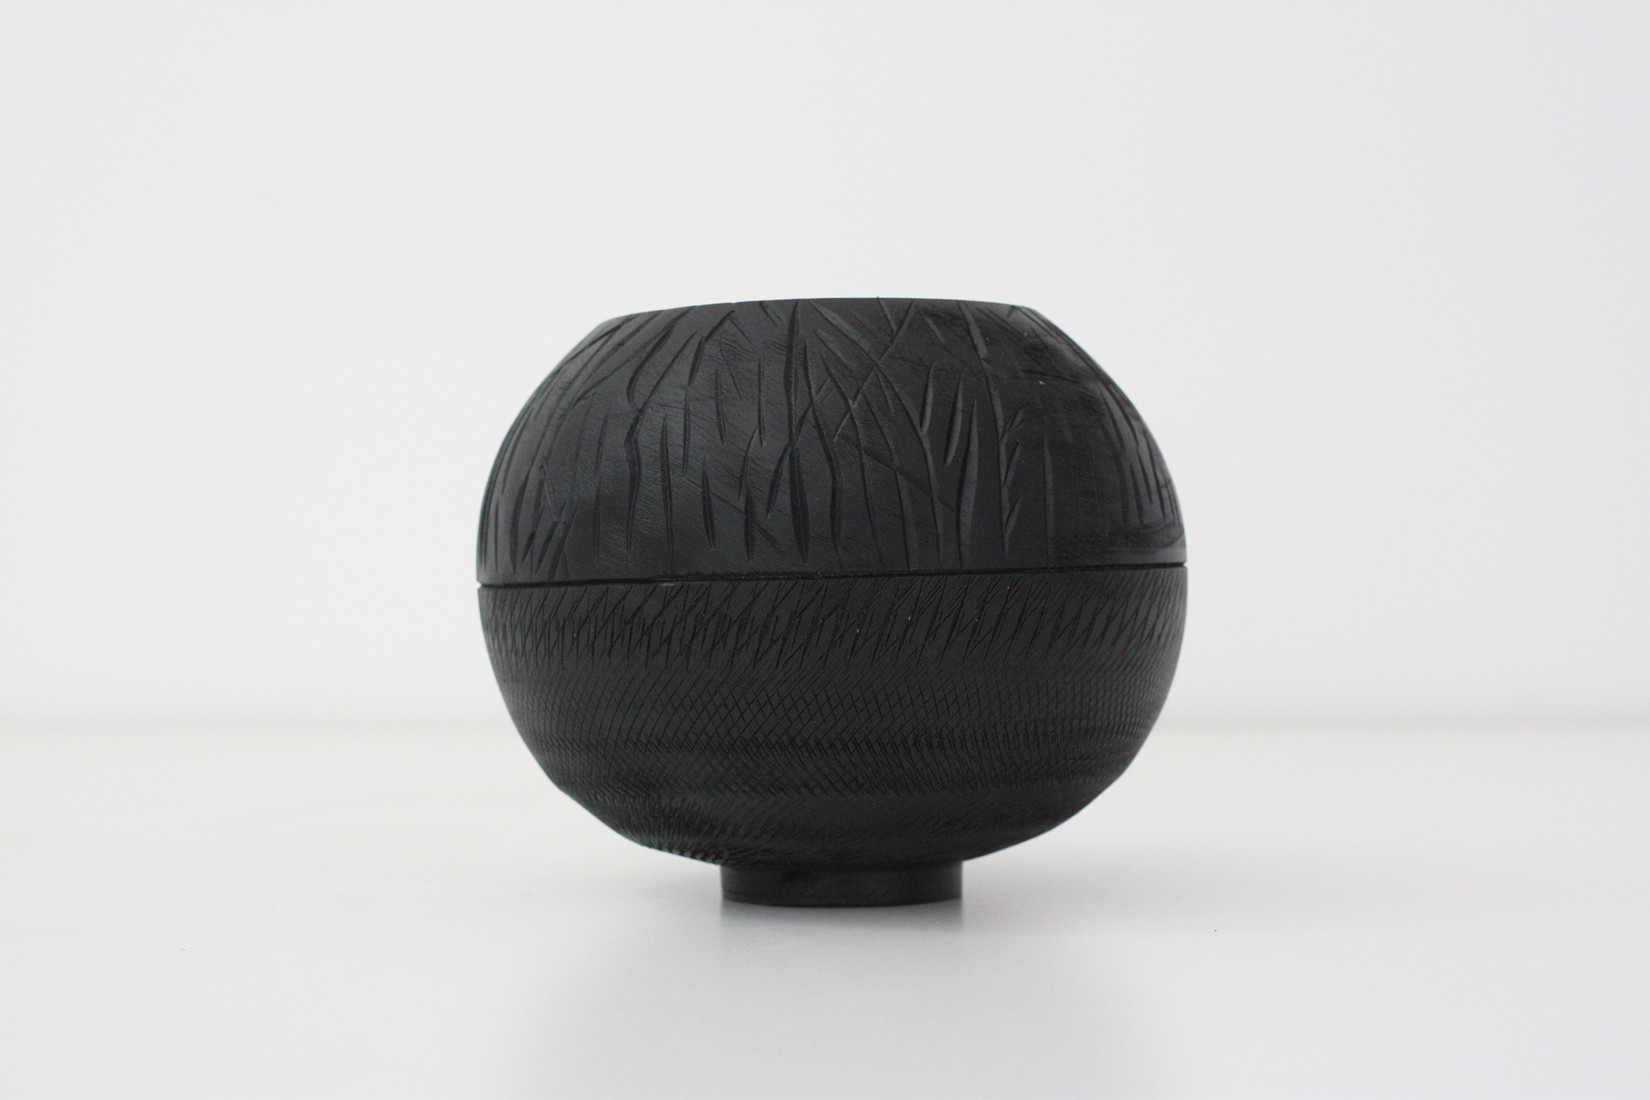 Textured black sphere